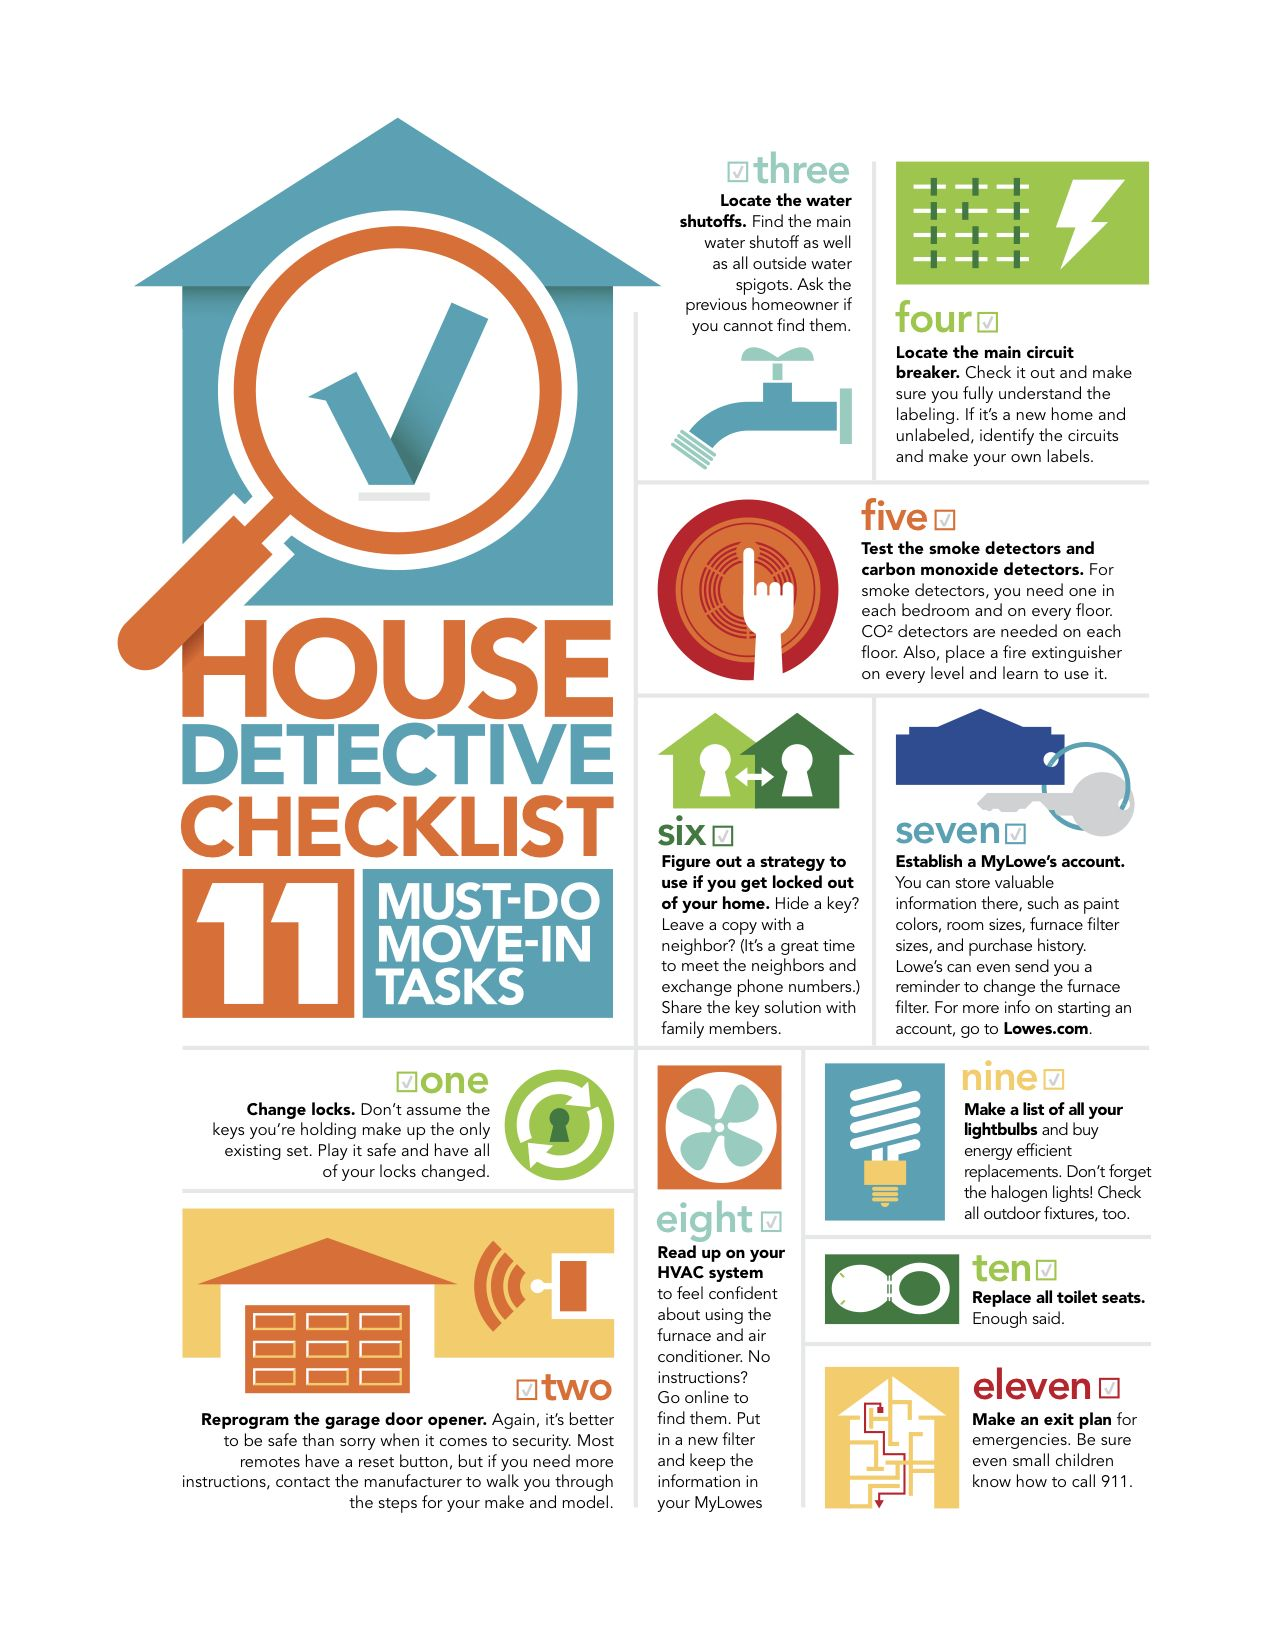 A Great Infographic With 11 Tips For All Of Our New Home Ers House Detective Checklist